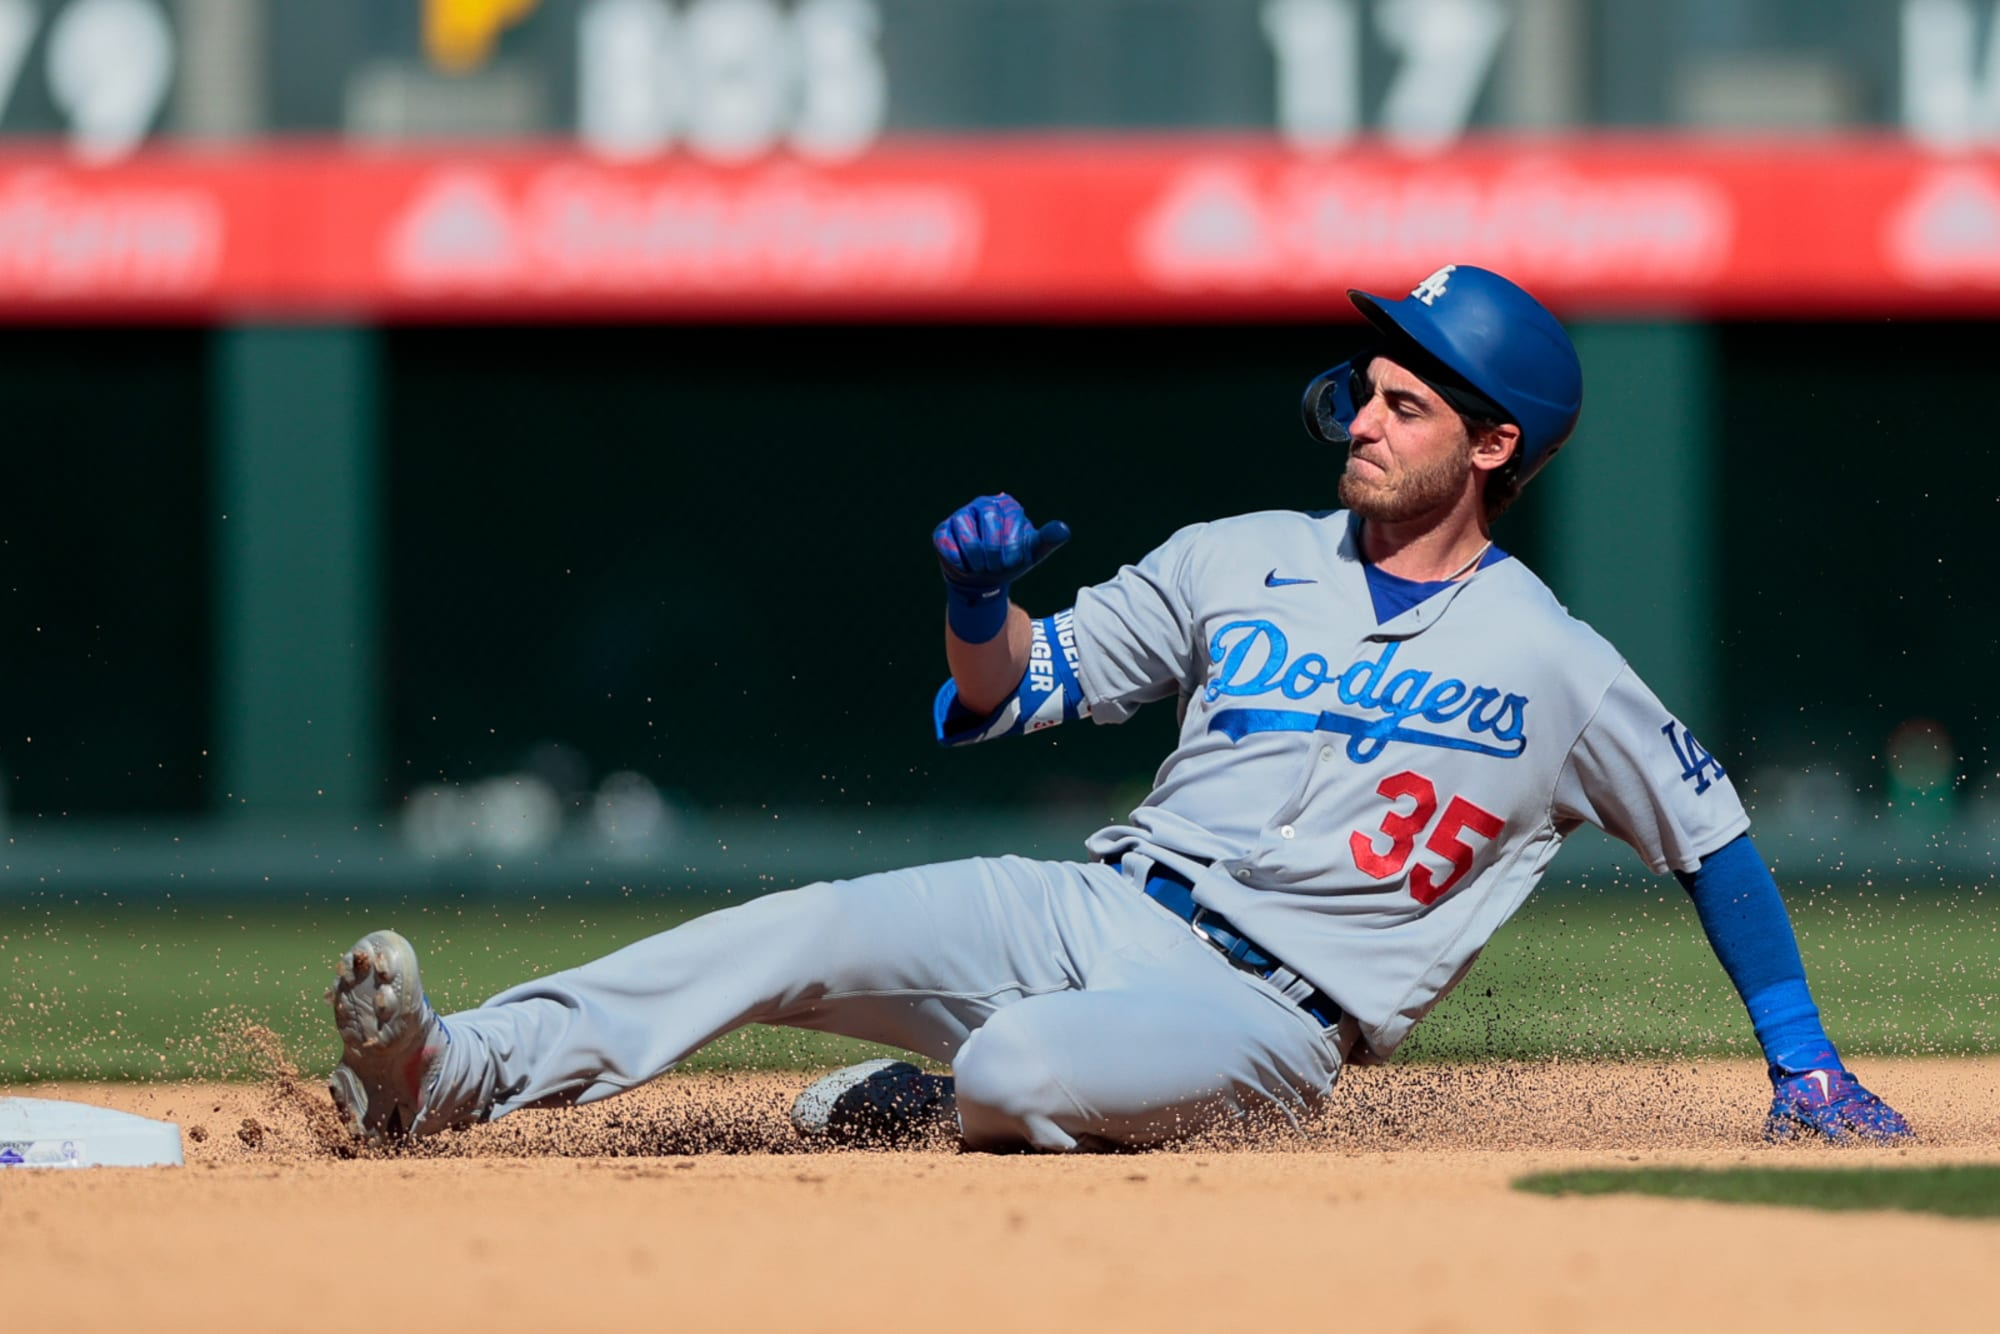 Dodgers: Cody Bellinger's injury just went from bad to potentially catastrophic